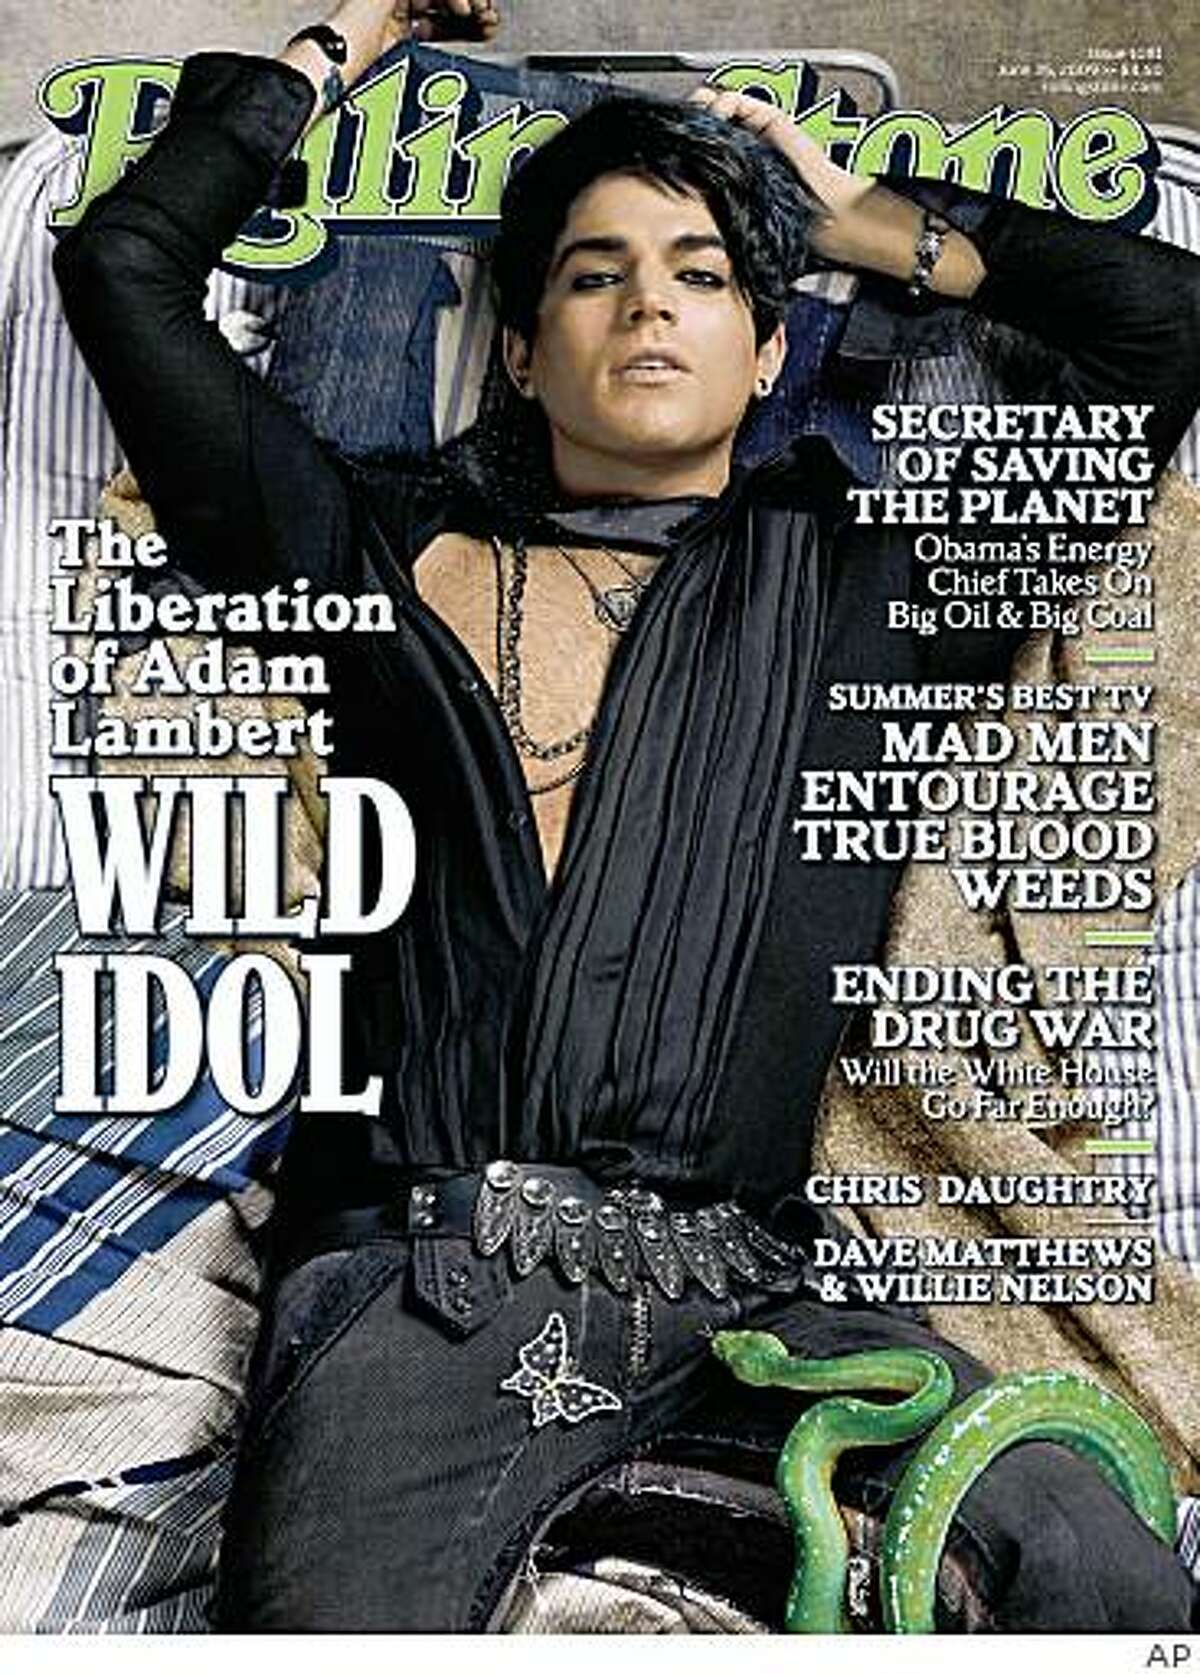 In this magazine cover image released by Rolling Stone,